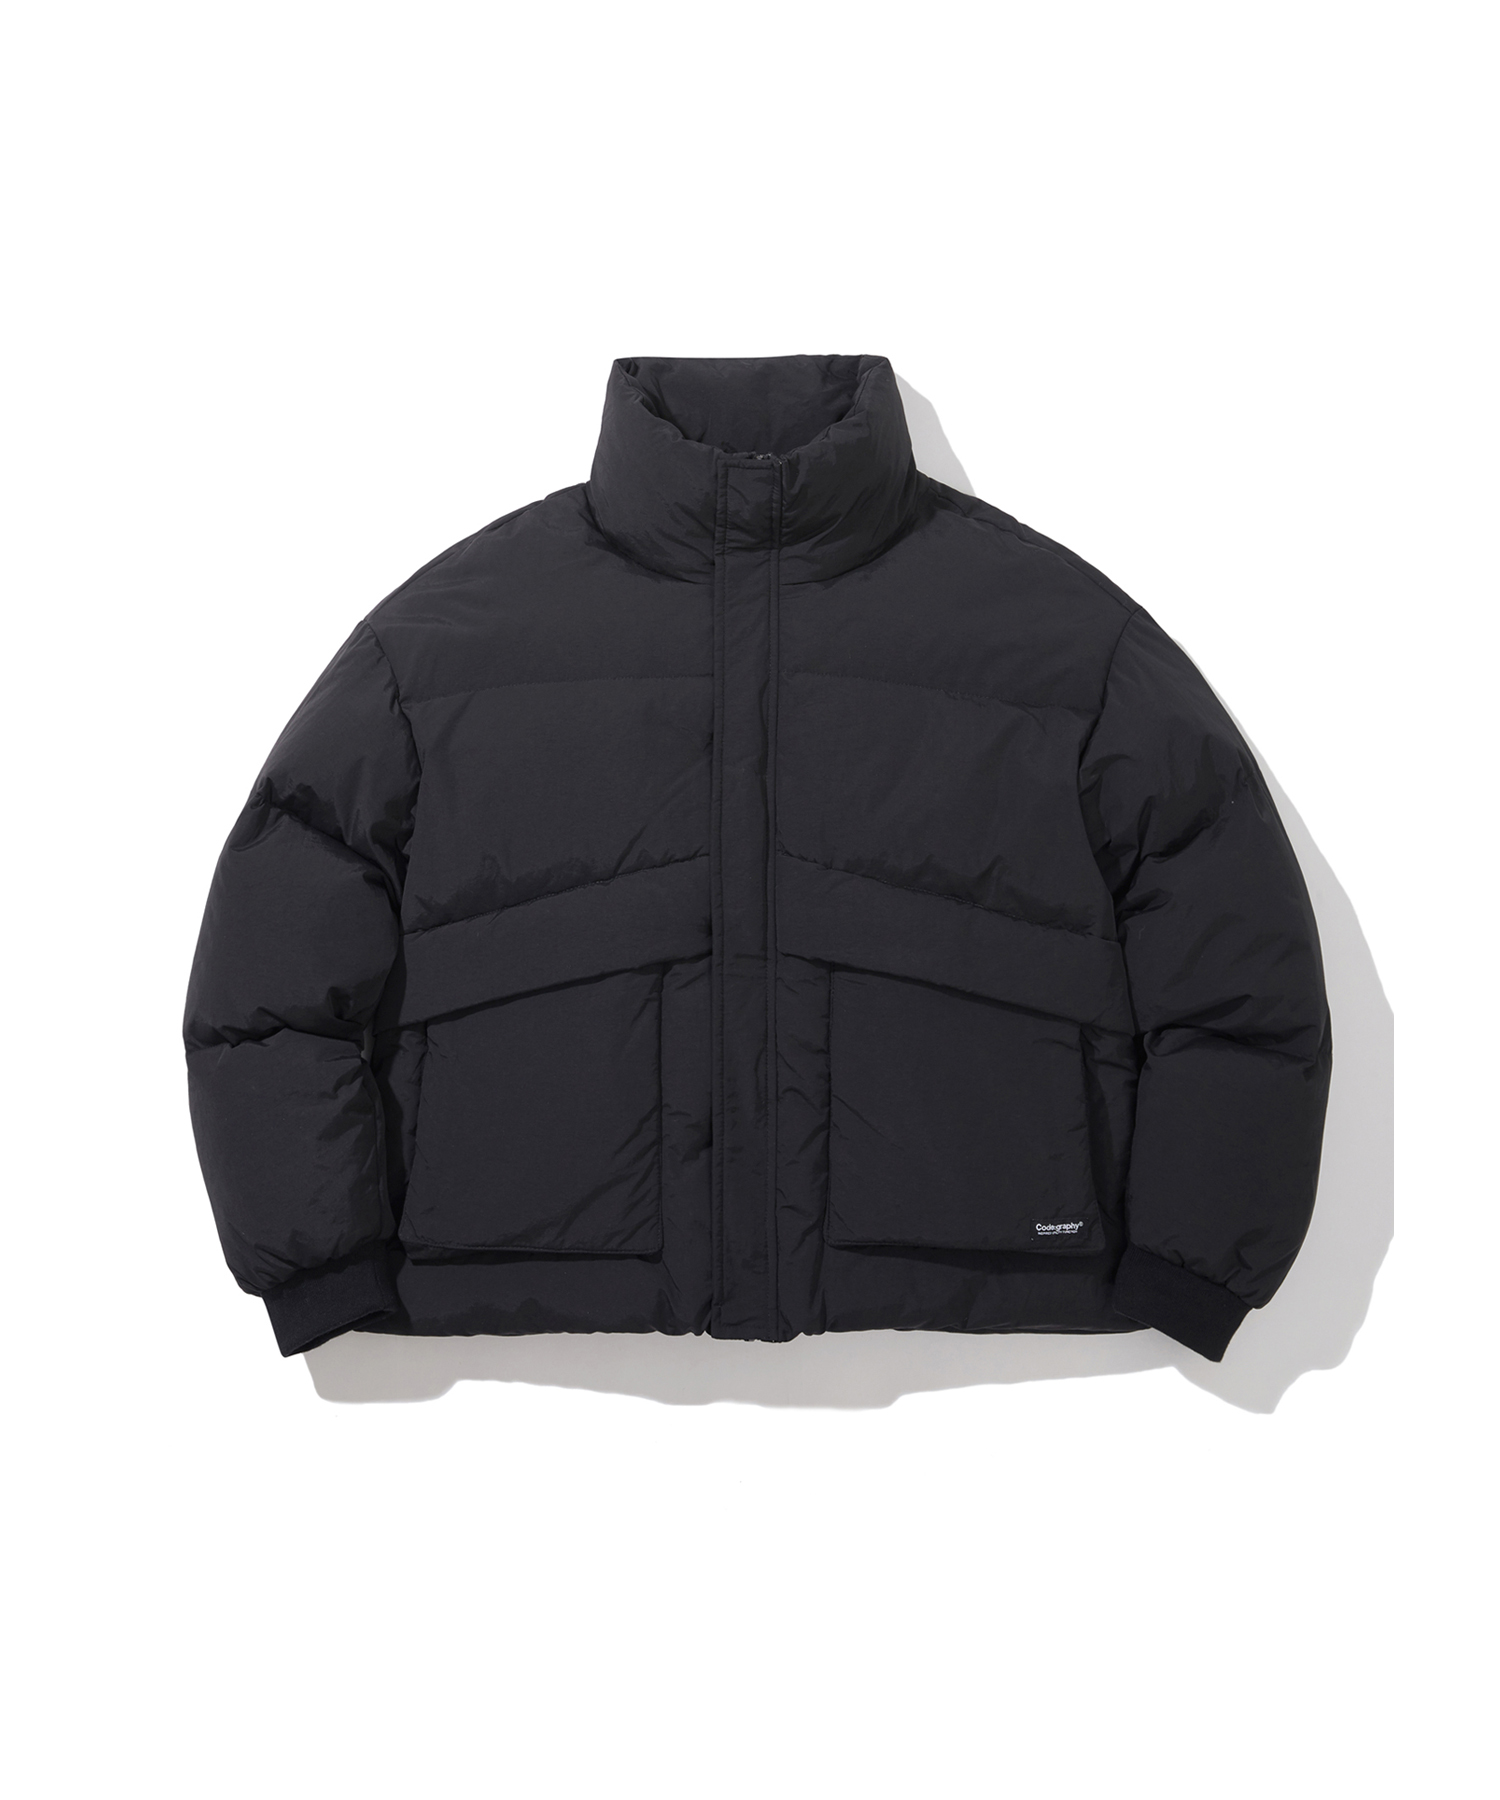 [Renewal]UTILITY DUCK DOWN SHORT PUFFA - BK